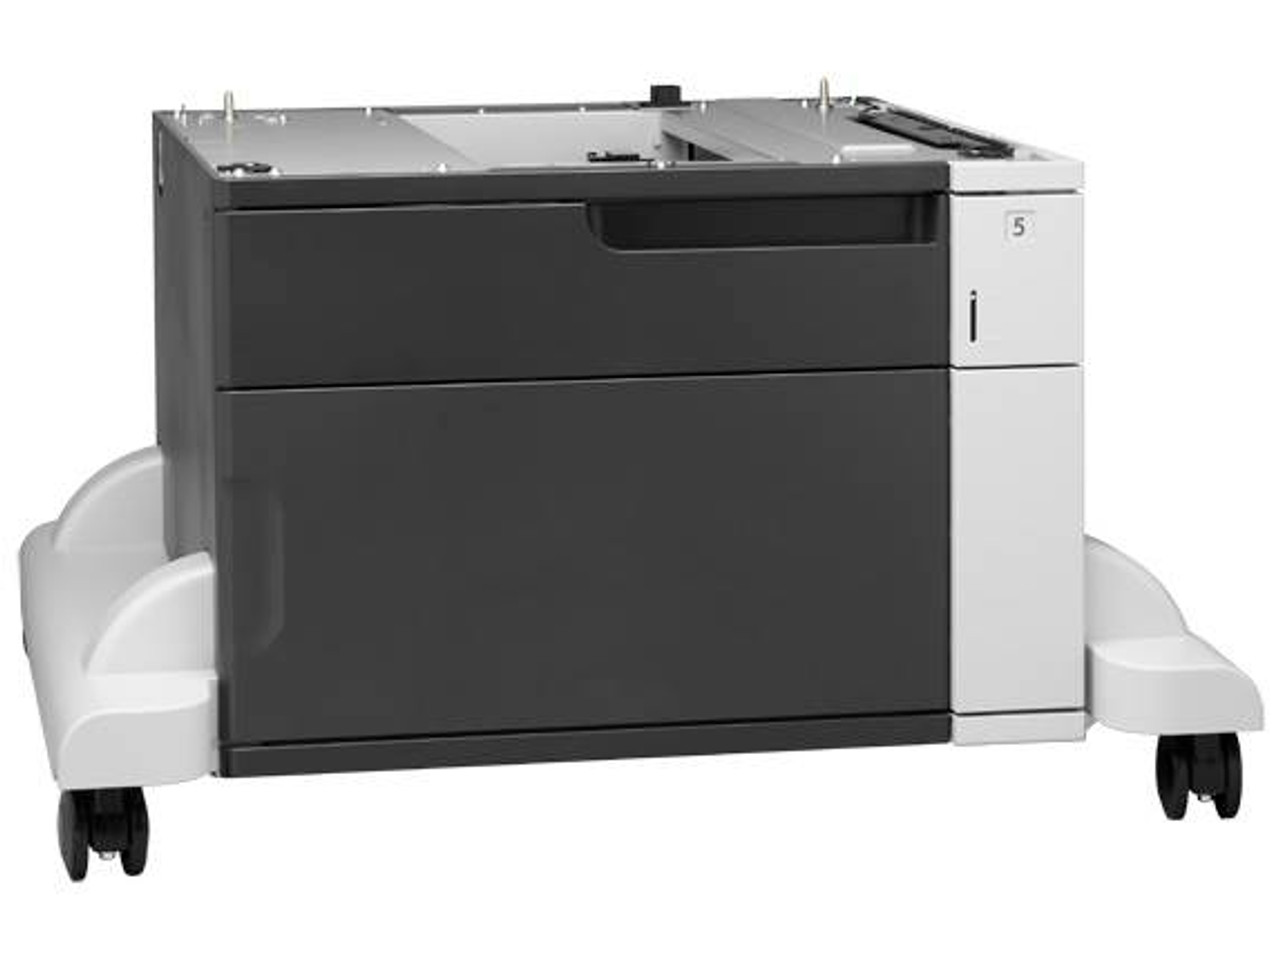 Image for HP CF243A LaserJet 1x500-sheet Feeder with Cabinet and Stand for HP Printers CX Computer Superstore